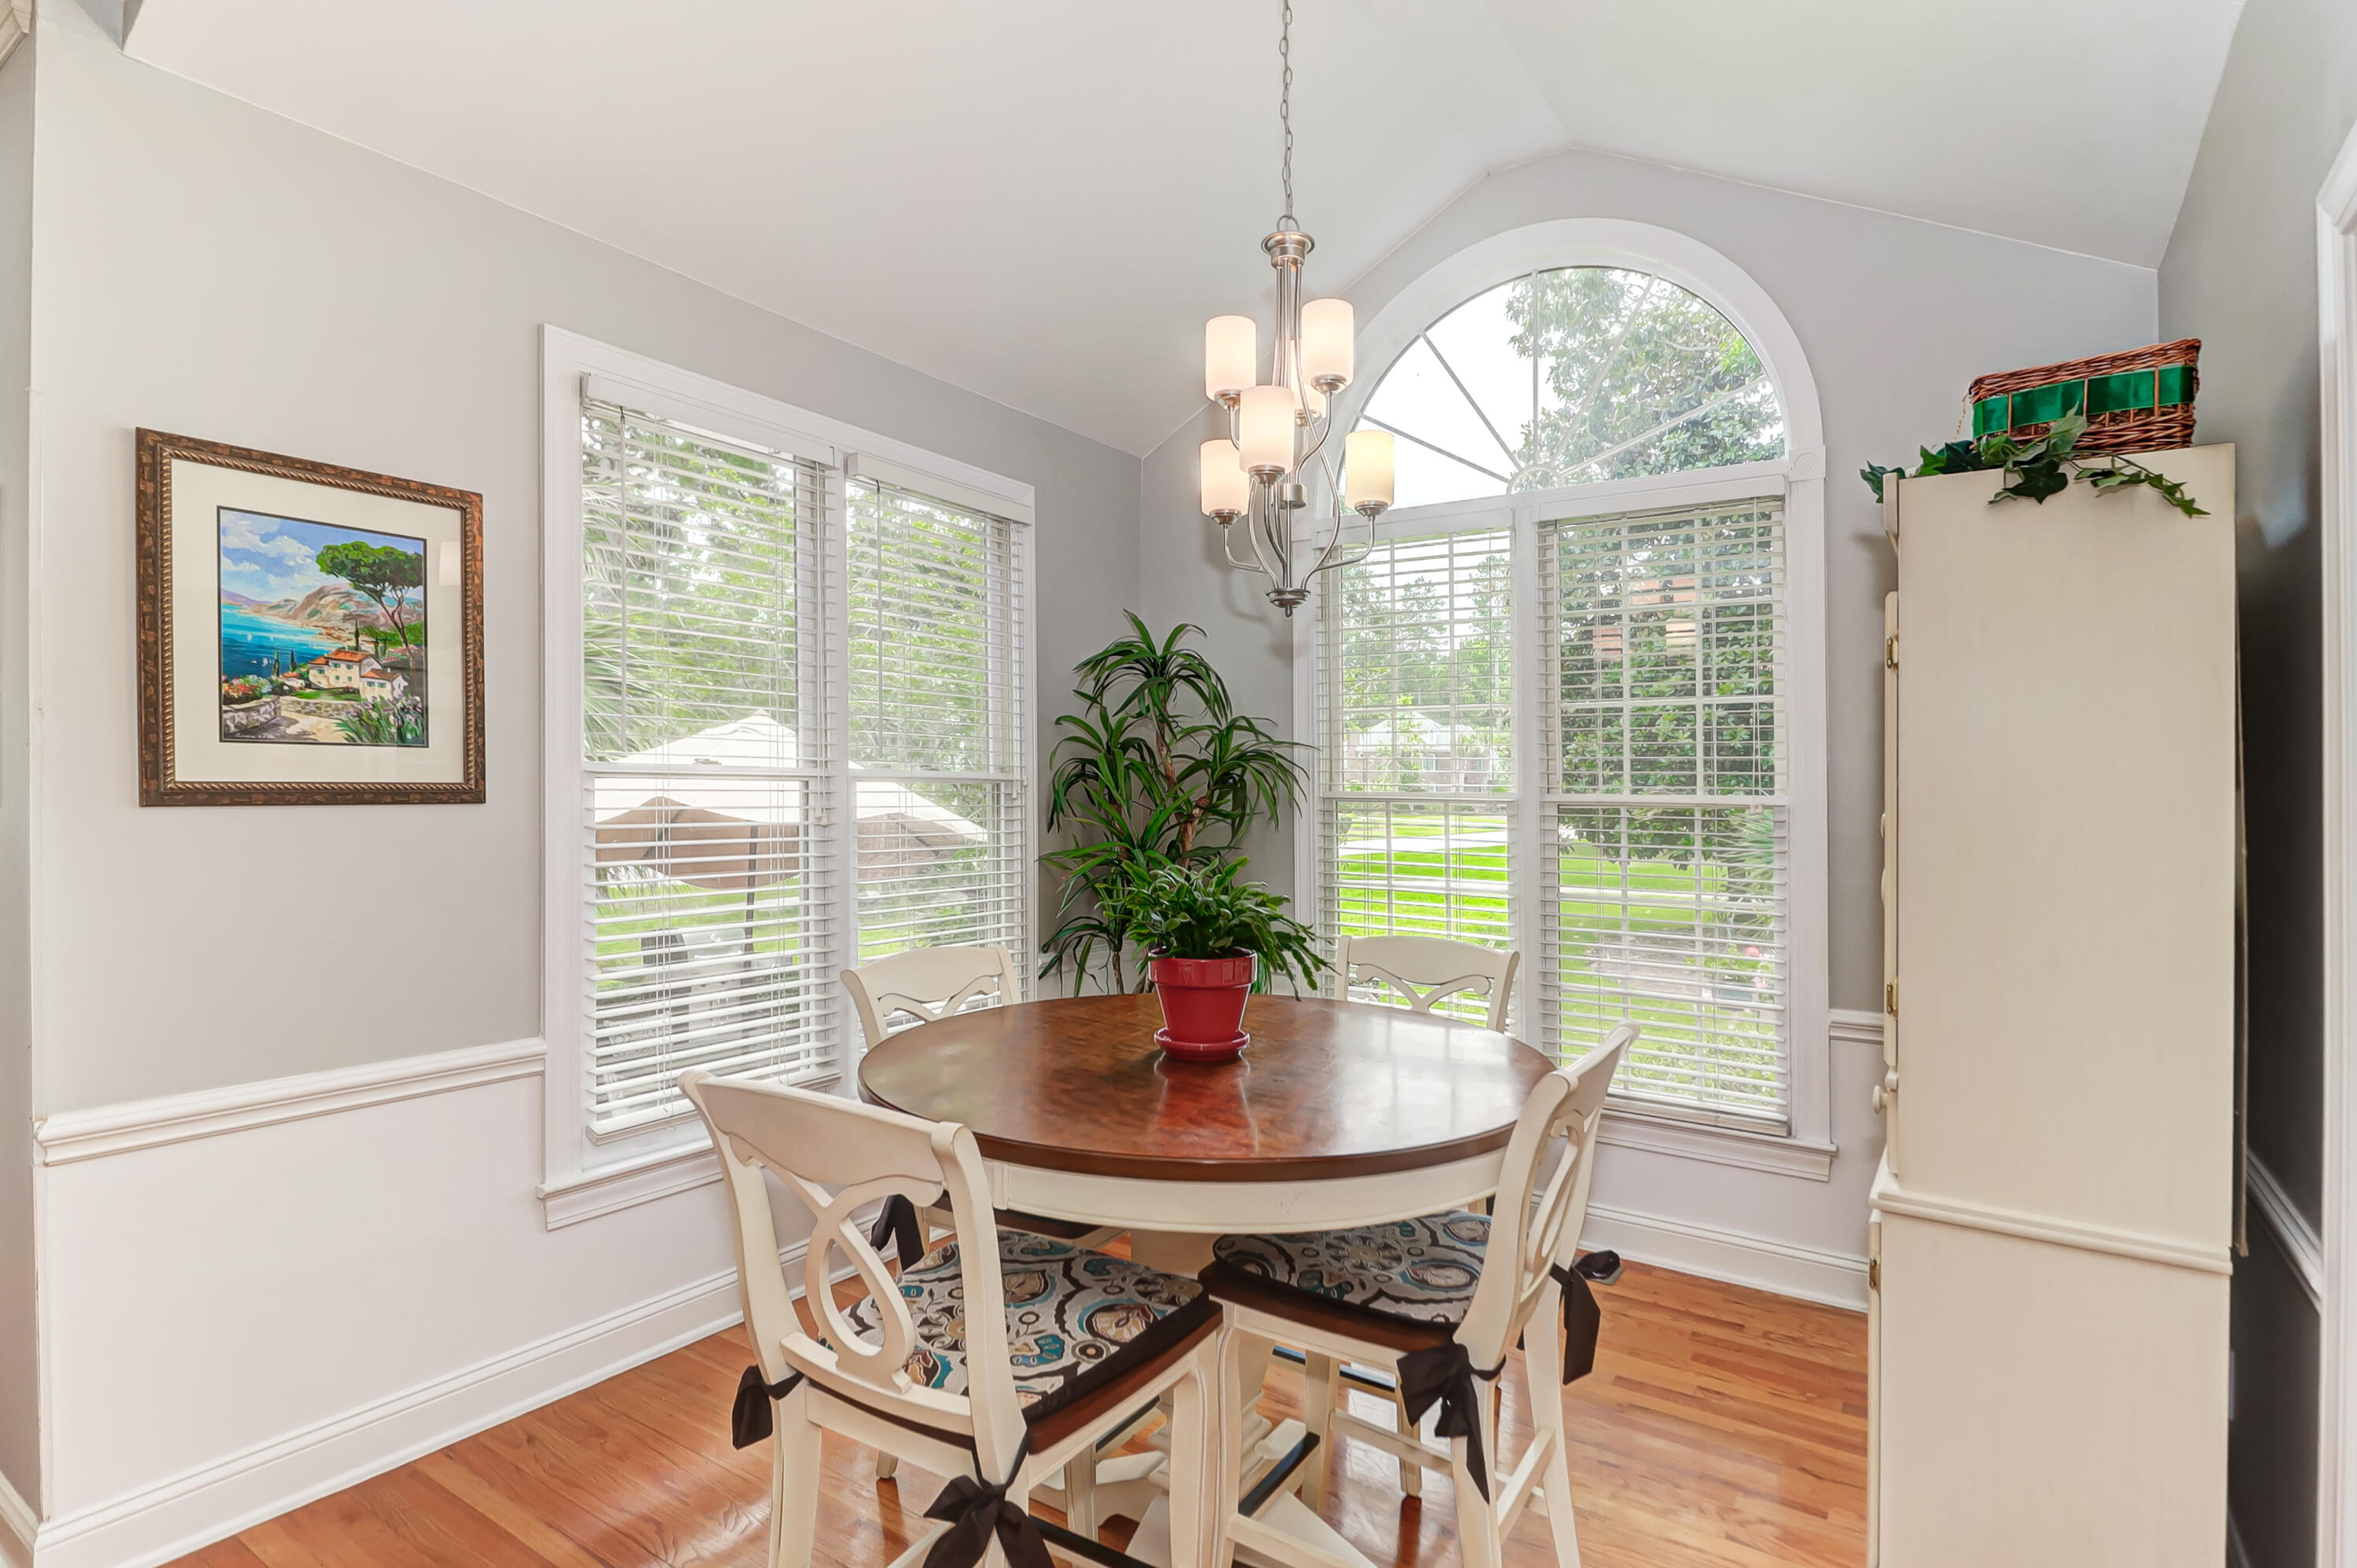 Coosaw Creek Country Club Homes For Sale - 8696 Fairway Woods, North Charleston, SC - 2